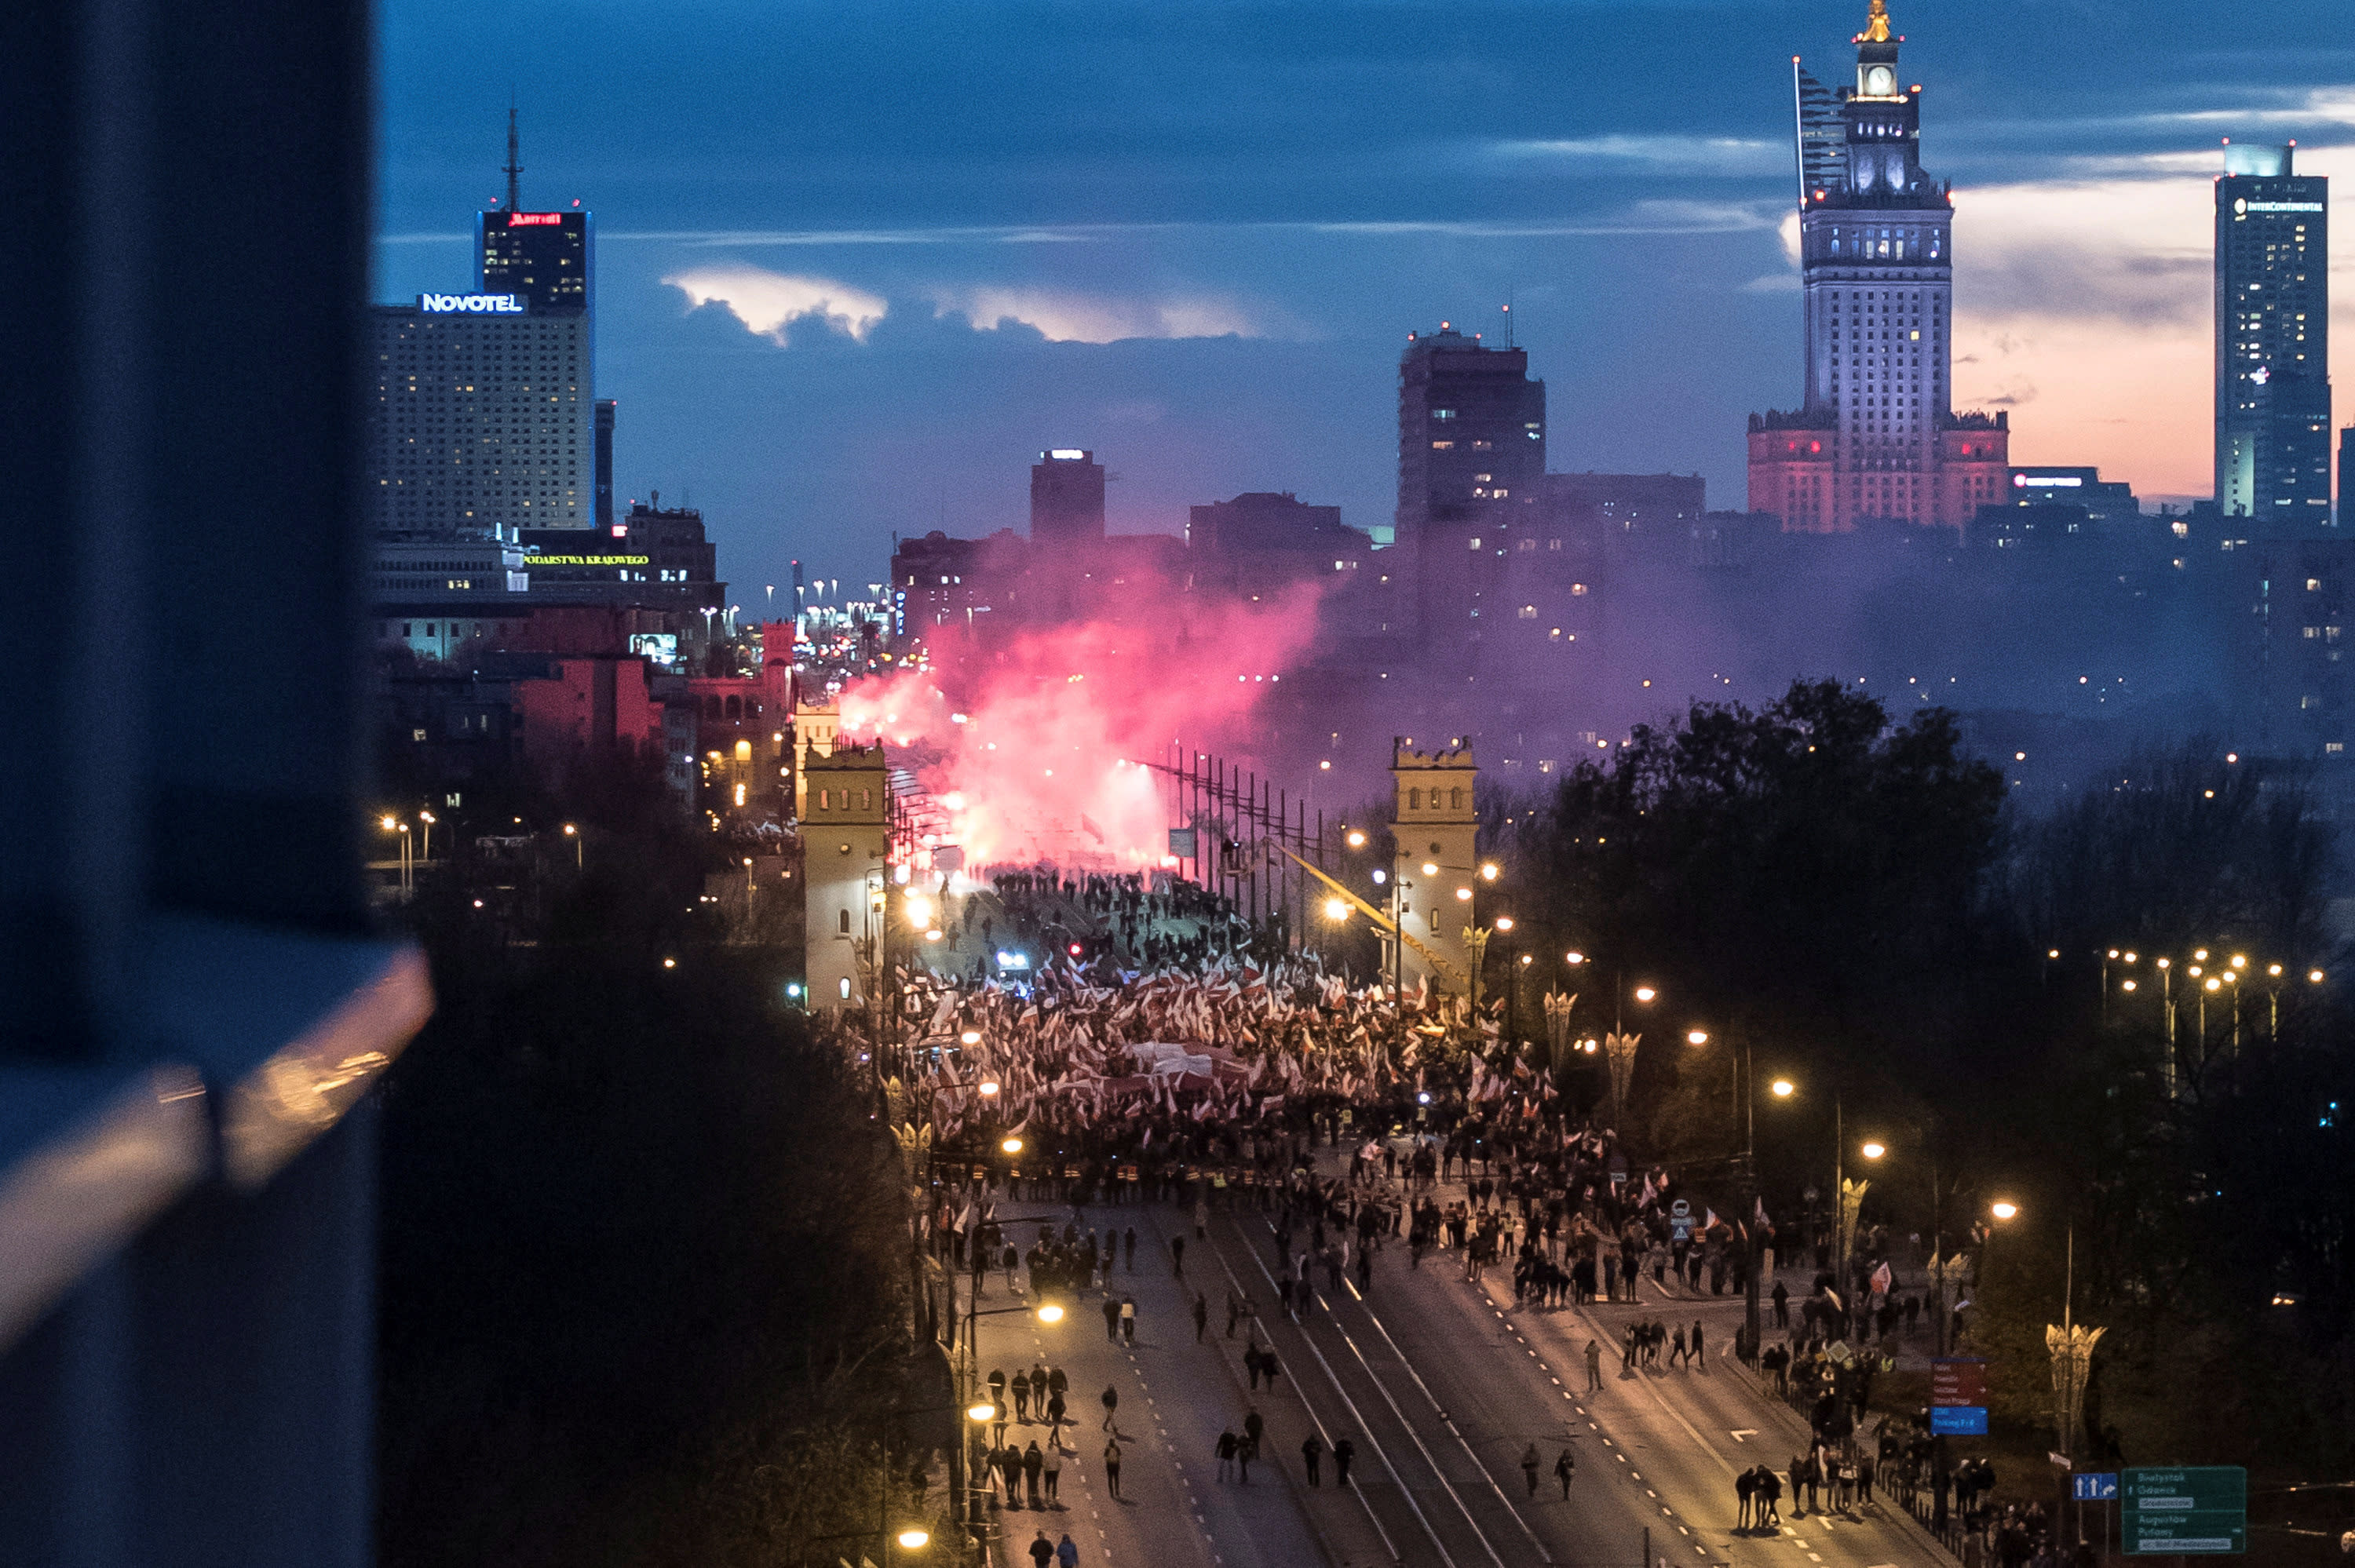 Demonstrators burn flares and wave Polish flags during Poland's Independence Day in Warsaw (AGENCJA GAZETA/FRANCISZEK MAZUR VIA REUTERS)